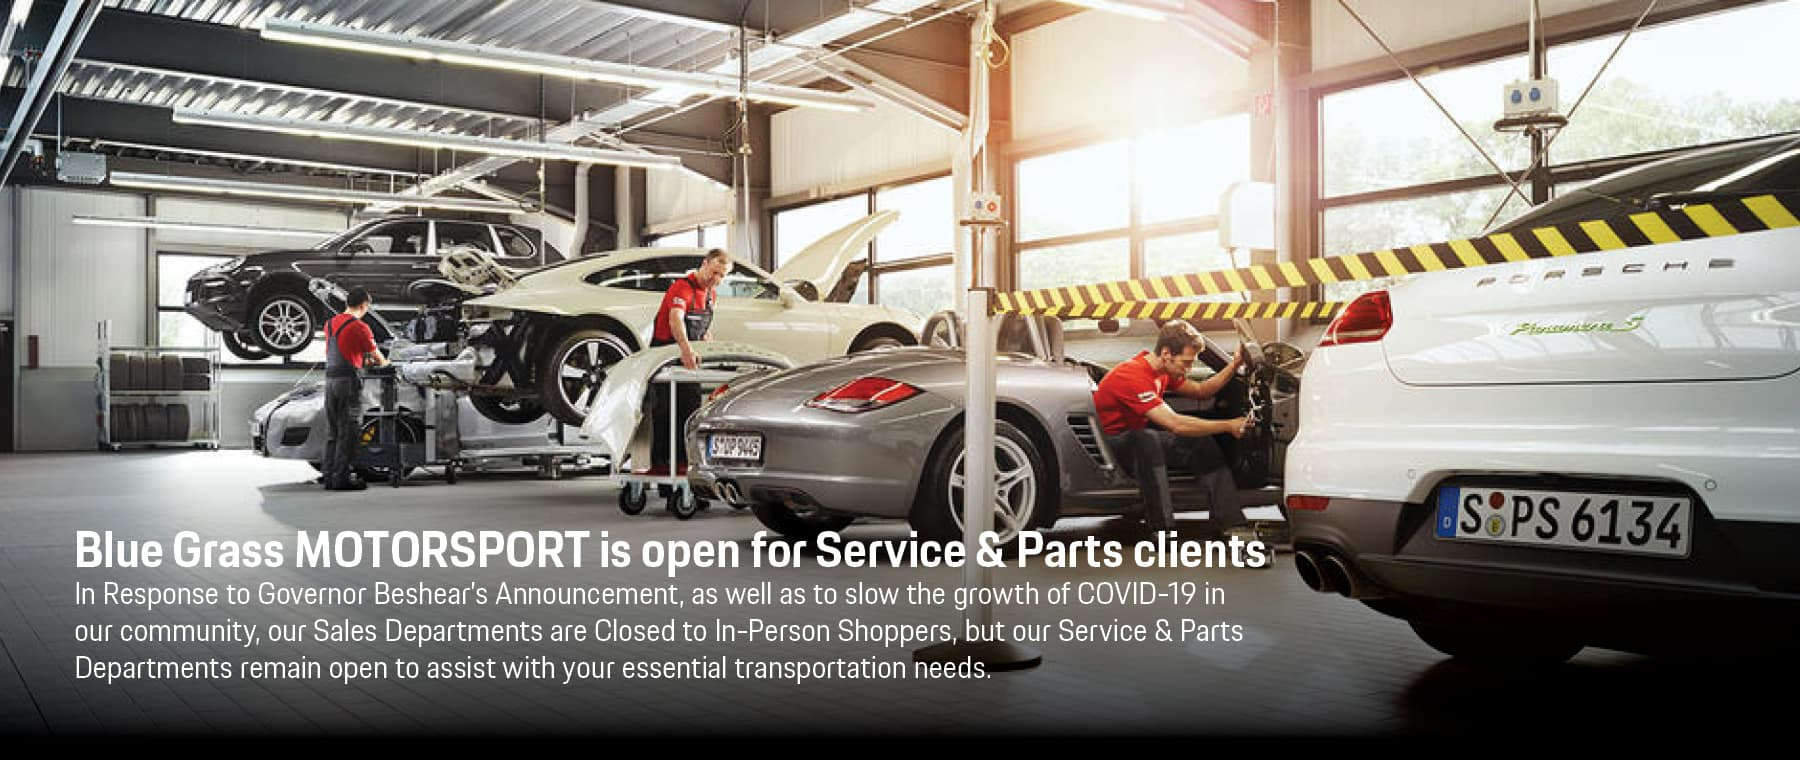 Service and Parts are still open